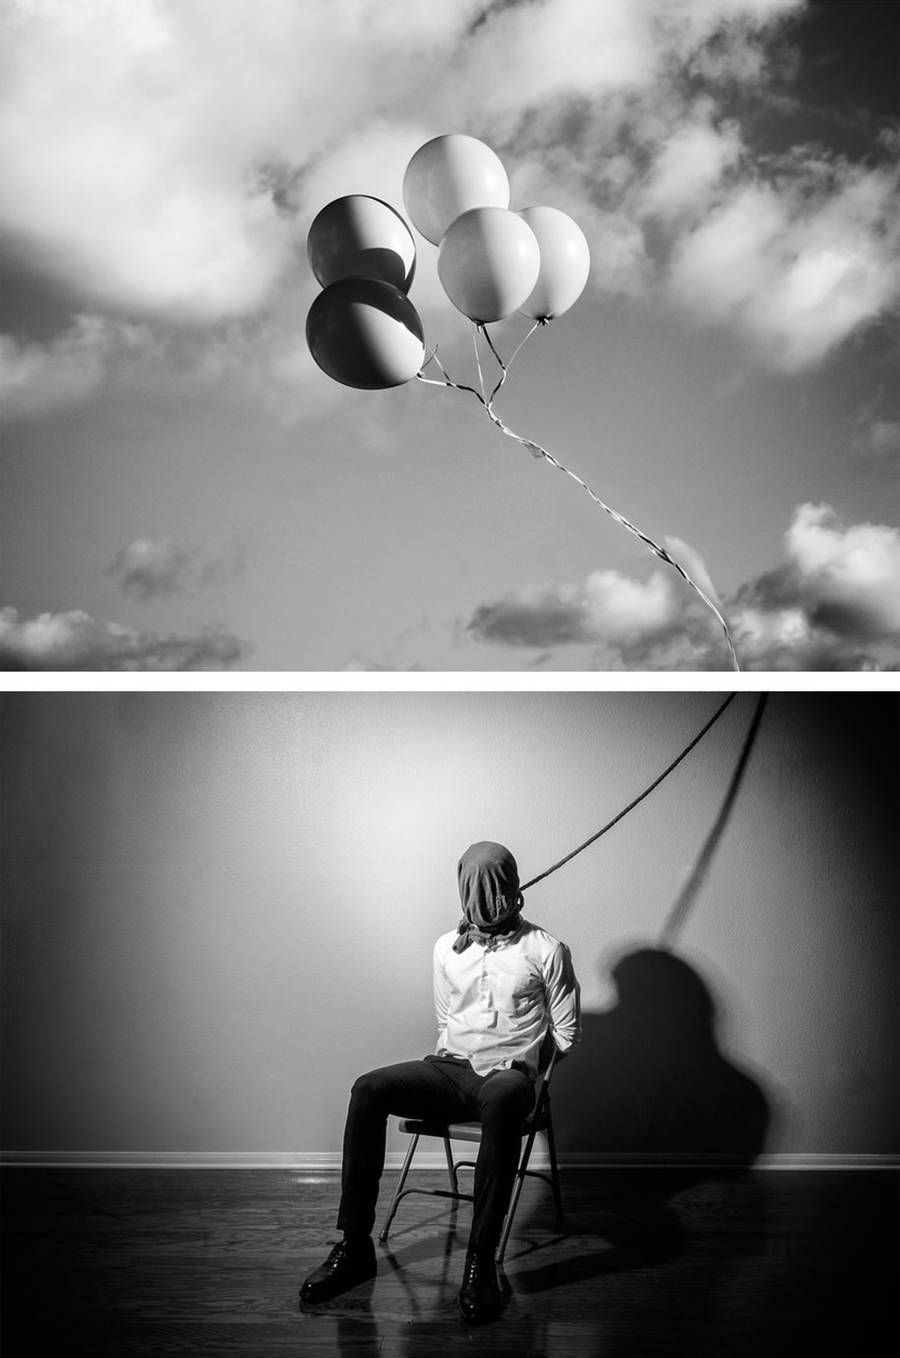 Depression illustrated through surreal self portraits by edward honaker